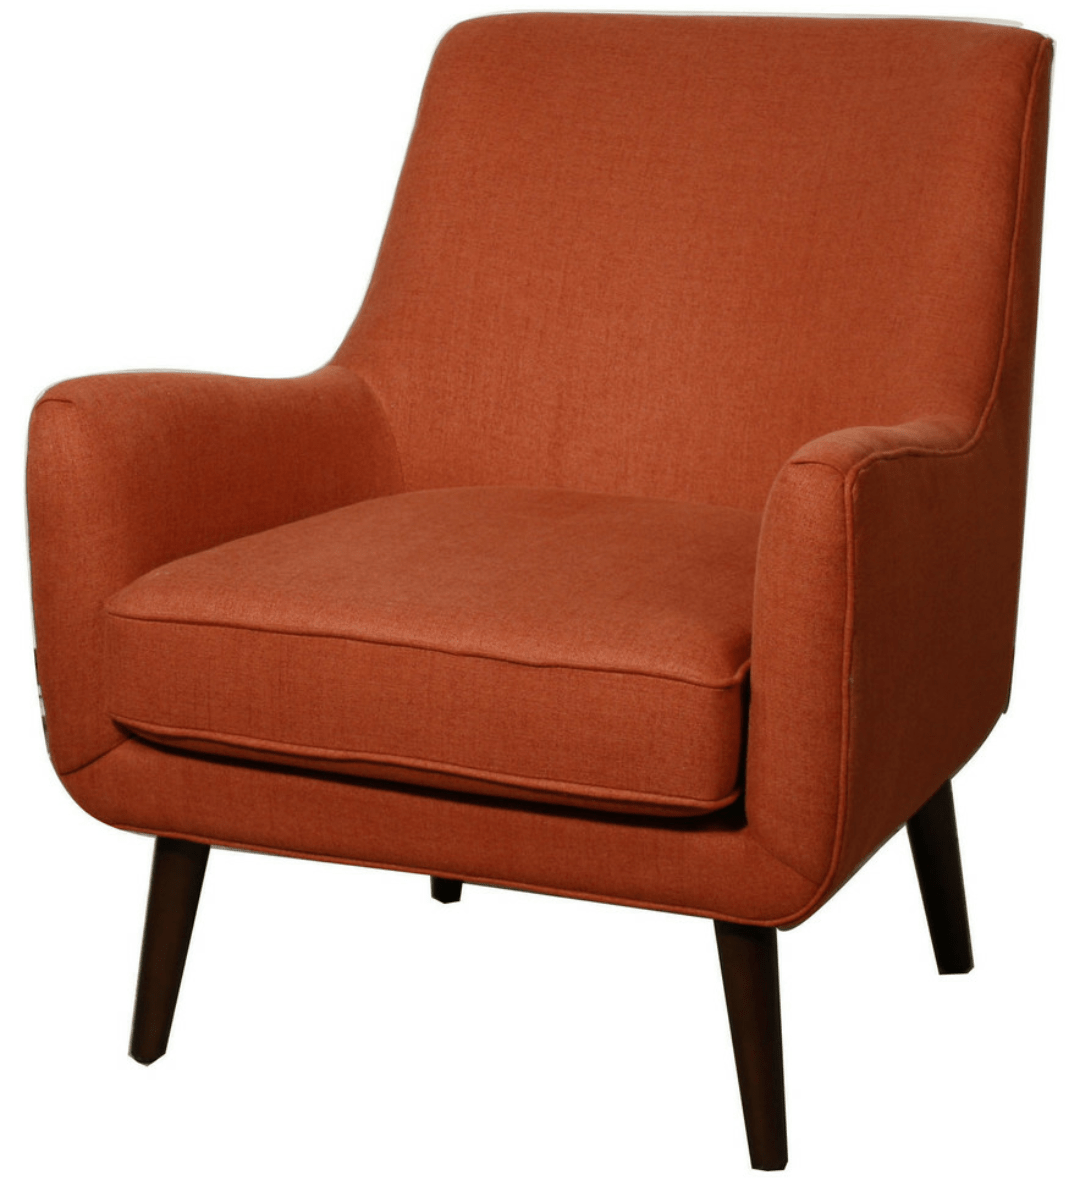 Single Chairs Single Seater Sofa Customize Your Office Furniture